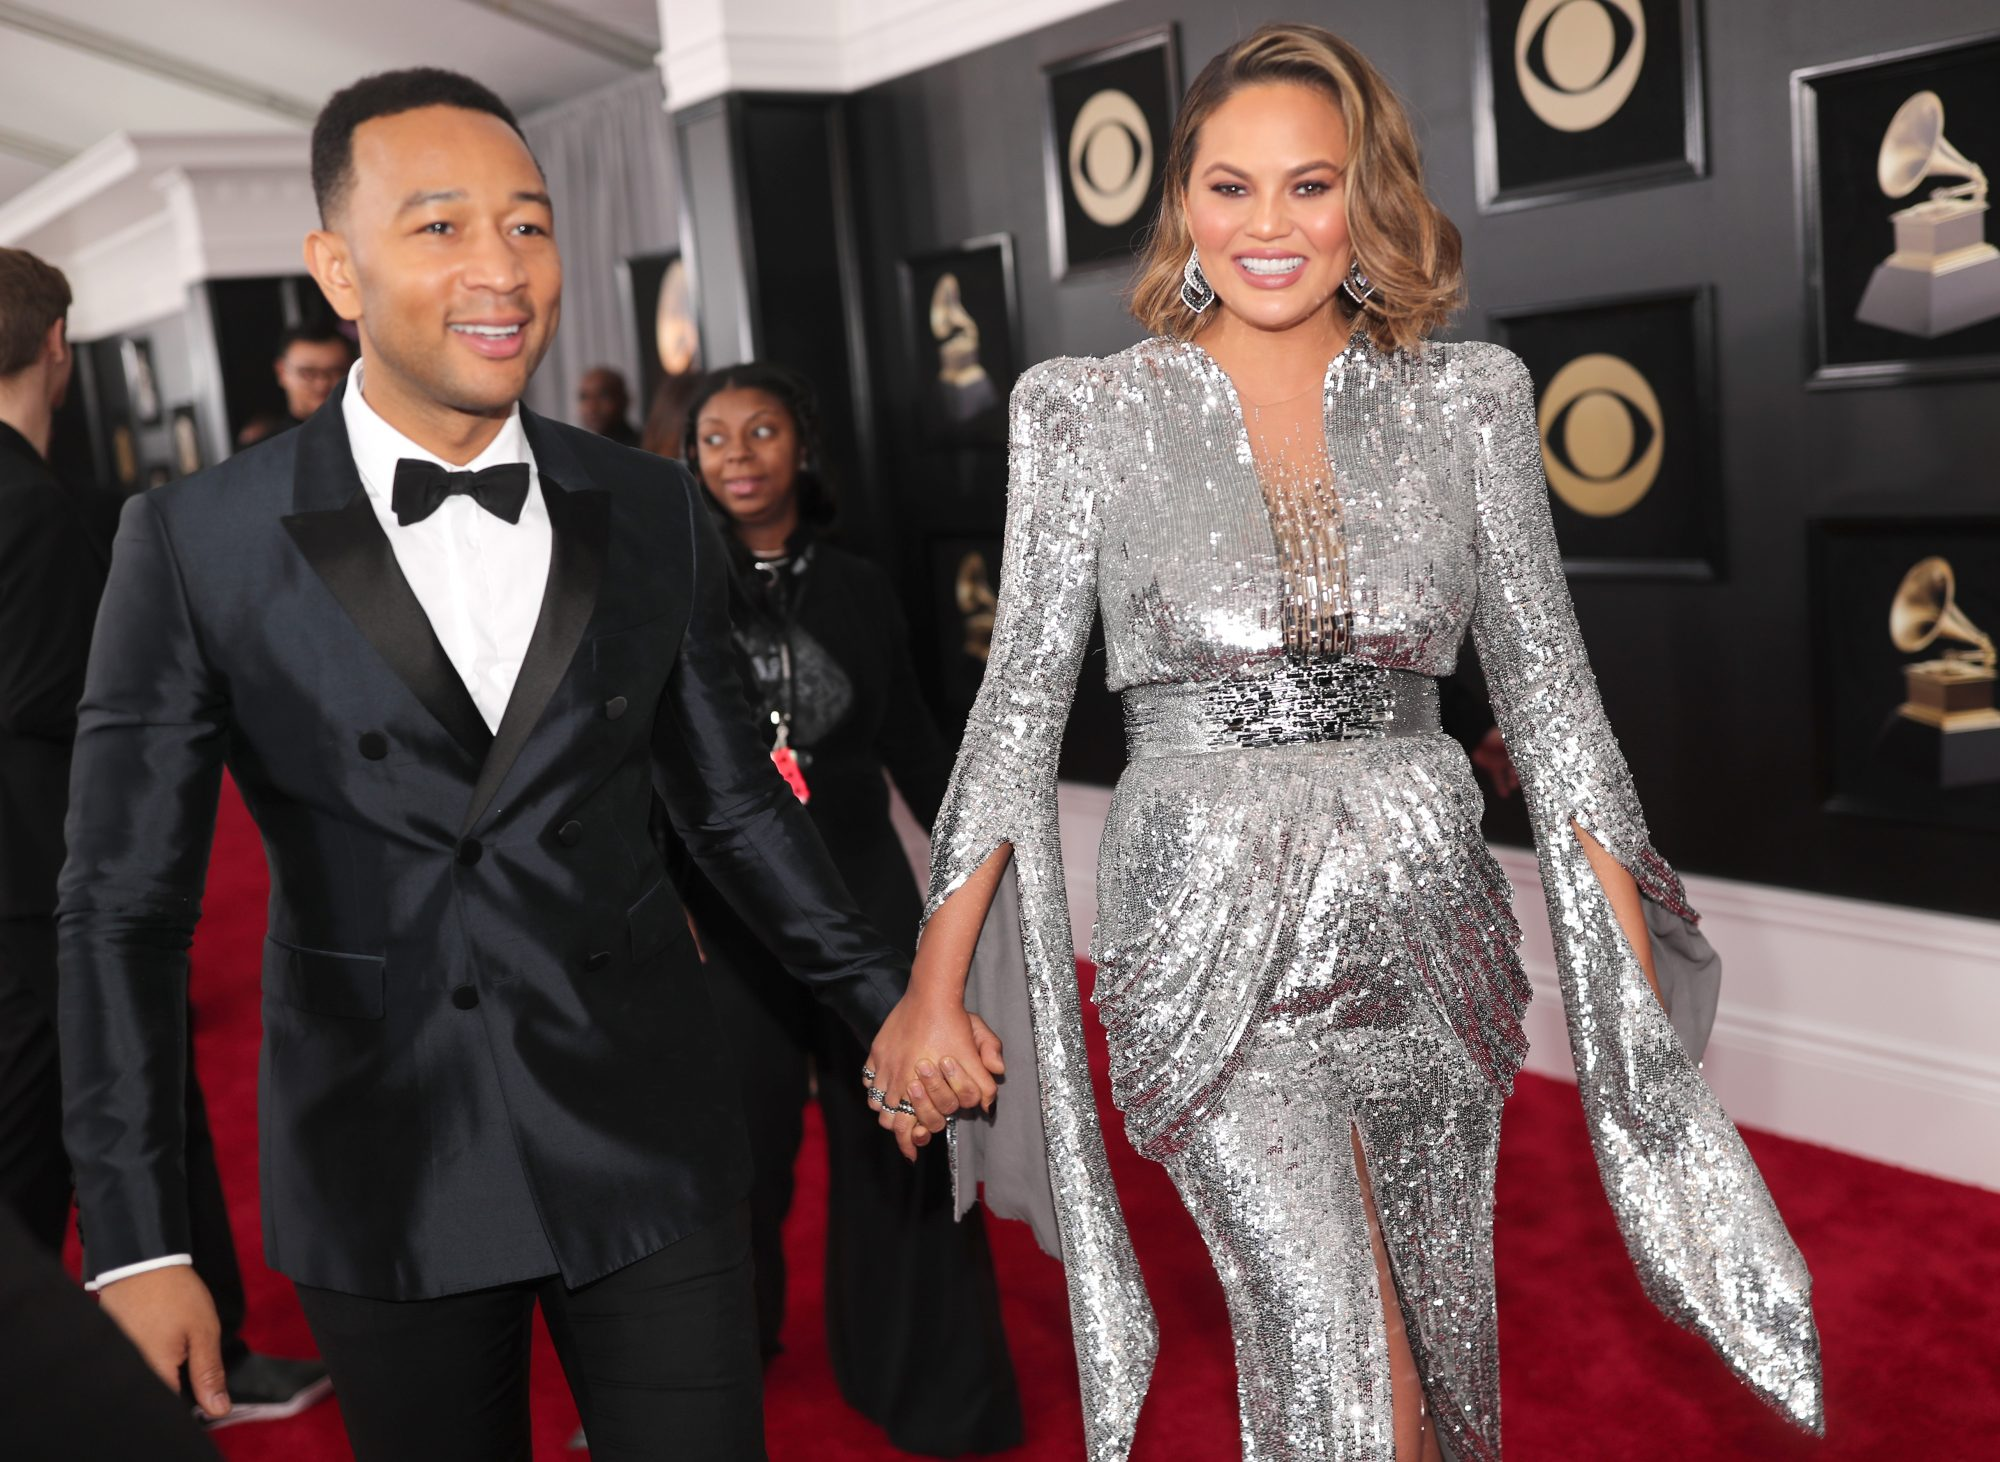 Chrissy Teigen and John Legend on the red carpet at the 2018 Grammy Awards.